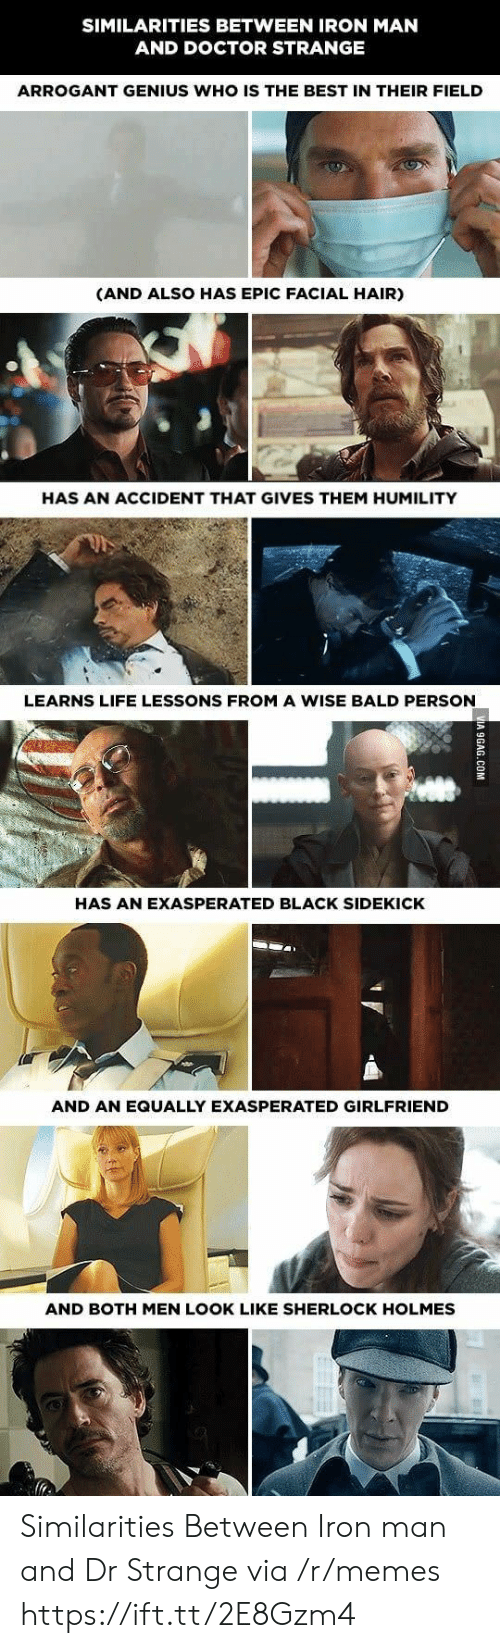 holmes: SIMILARITIES BETWEEN IRON MAN  AND DOCTOR STRANGE  ARROGANT GENIUS WHO IS THE BEST IN THEIR FIELD  (AND ALSO HAS EPIC FACIAL HAIR)  HAS AN ACCIDENT THAT GIVES THEM HUMILITY  LEARNS LIFE LESSONS FROM A WISE BALD PERSON  HAS AN EXASPERATED BLACK SIDEKICK  AND AN EQUALLY EXASPERATED GIRLFRIEND  AND BOTH MEN LOOK LIKE SHERLOCK HOLMES Similarities Between Iron man and Dr Strange via /r/memes https://ift.tt/2E8Gzm4